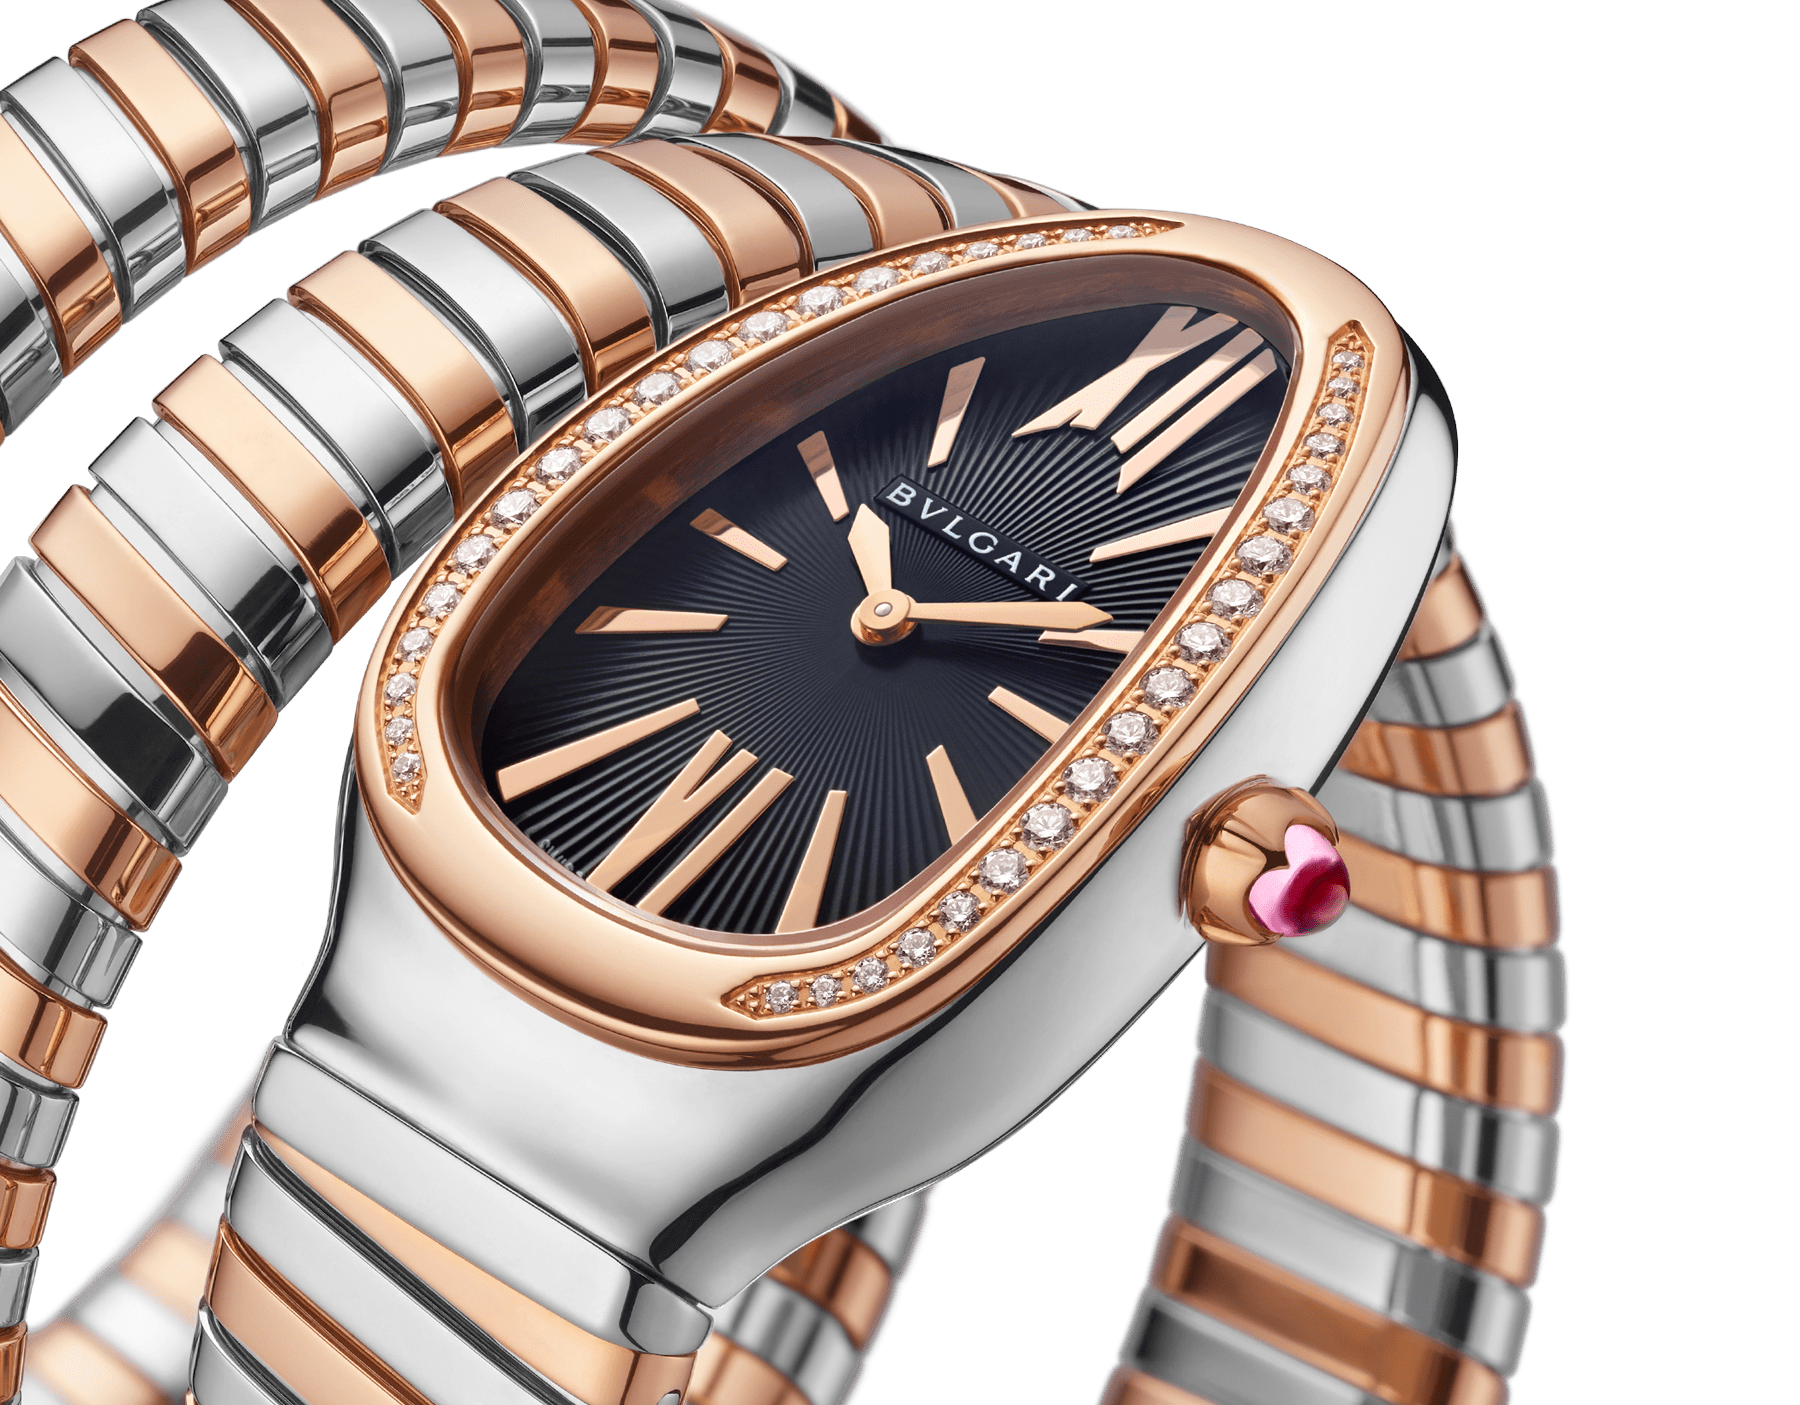 Serpenti Tubogas double spiral watch with stainless steel case, 18 kt rose gold bezel set with brilliant cut diamonds, black opaline dial, 18 kt rose gold and stainless steel bracelet. 102099 image 3